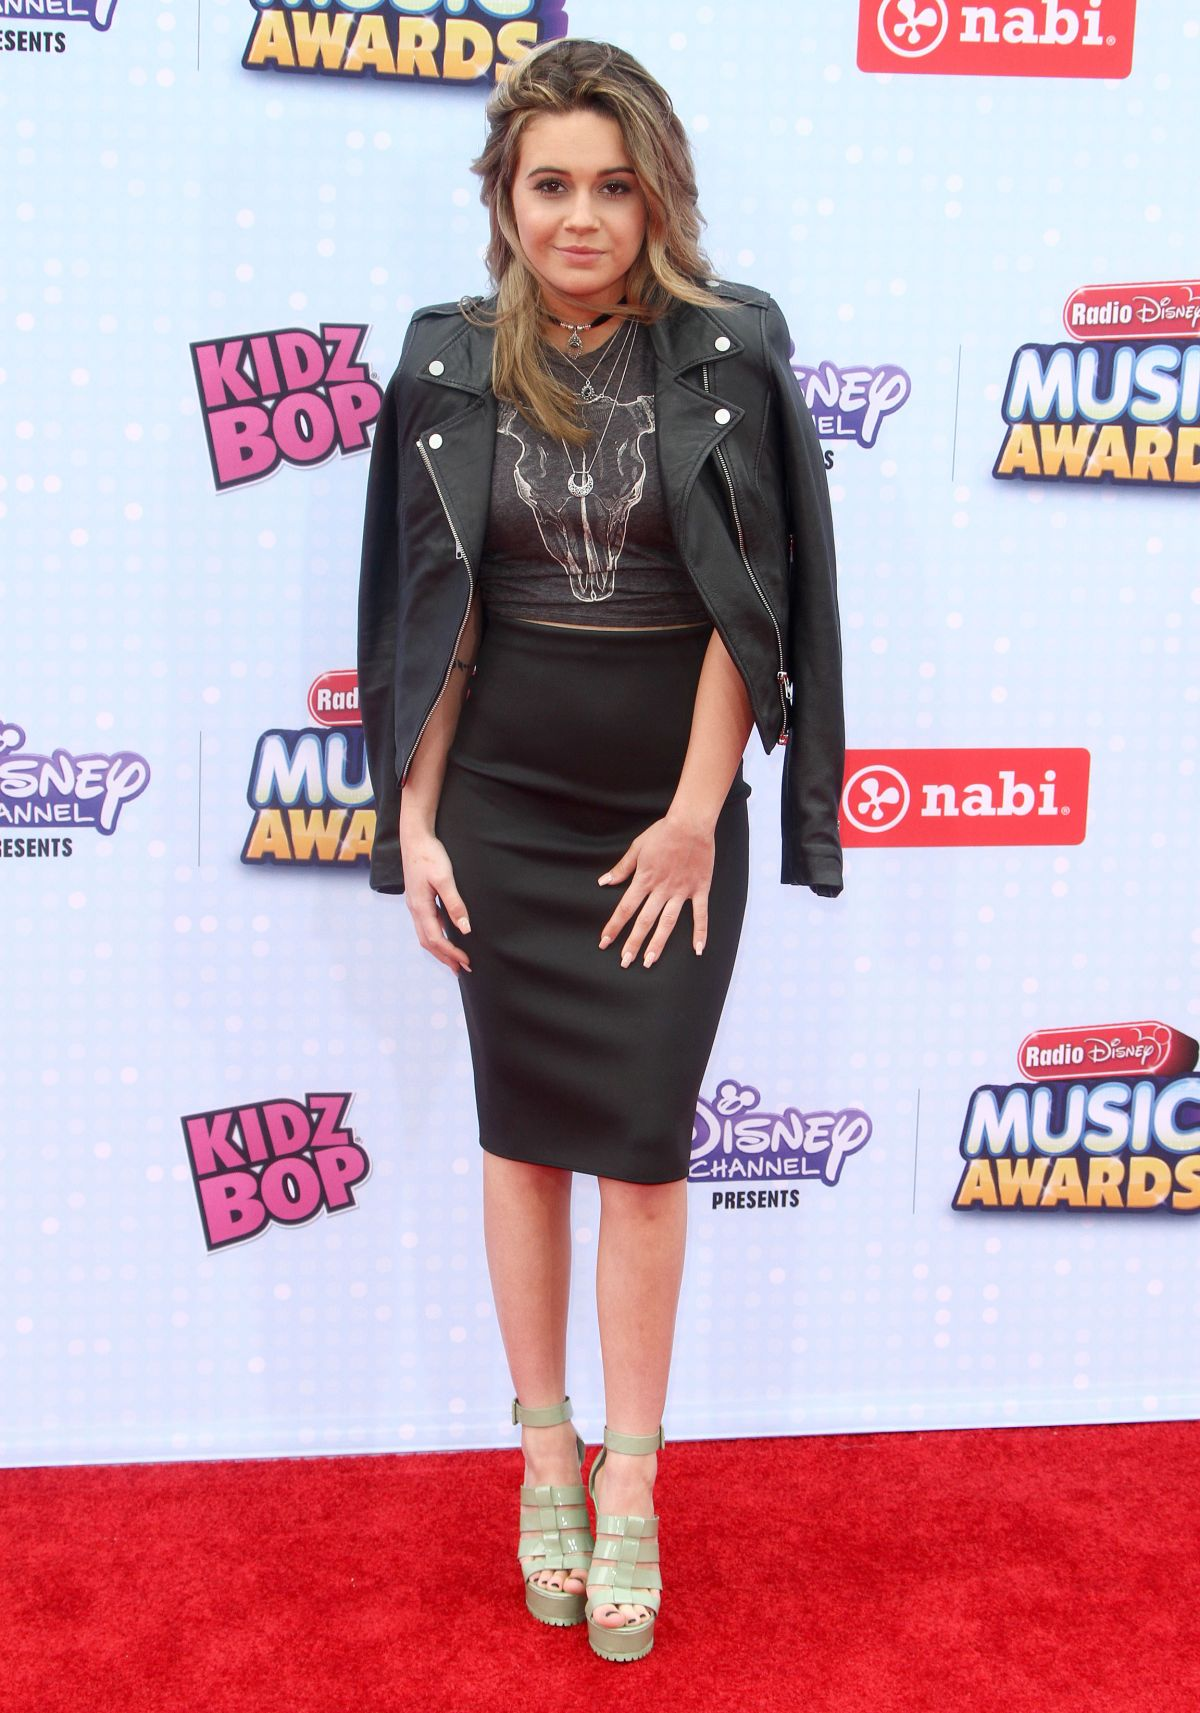 BEATRICE MILLER at 2015 Radio Disney Music Awards in Los Angeles